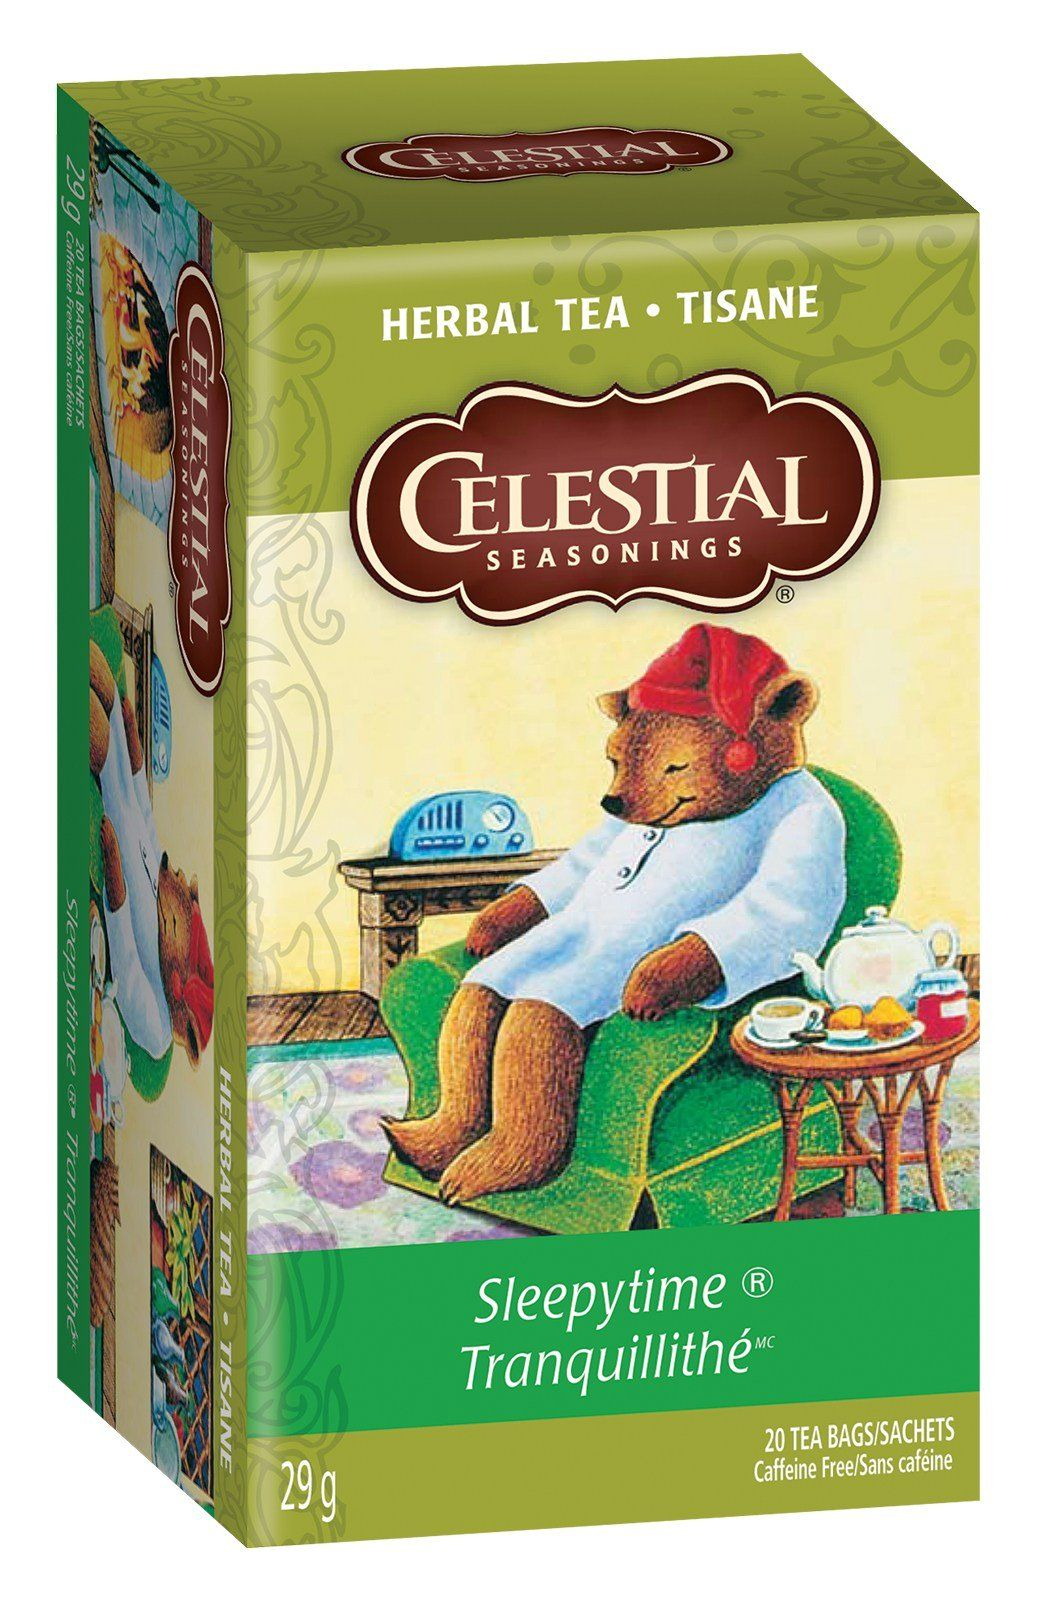 Food & Drink - Celestial Seasonings - Sleepytime Tea, 20 Bags